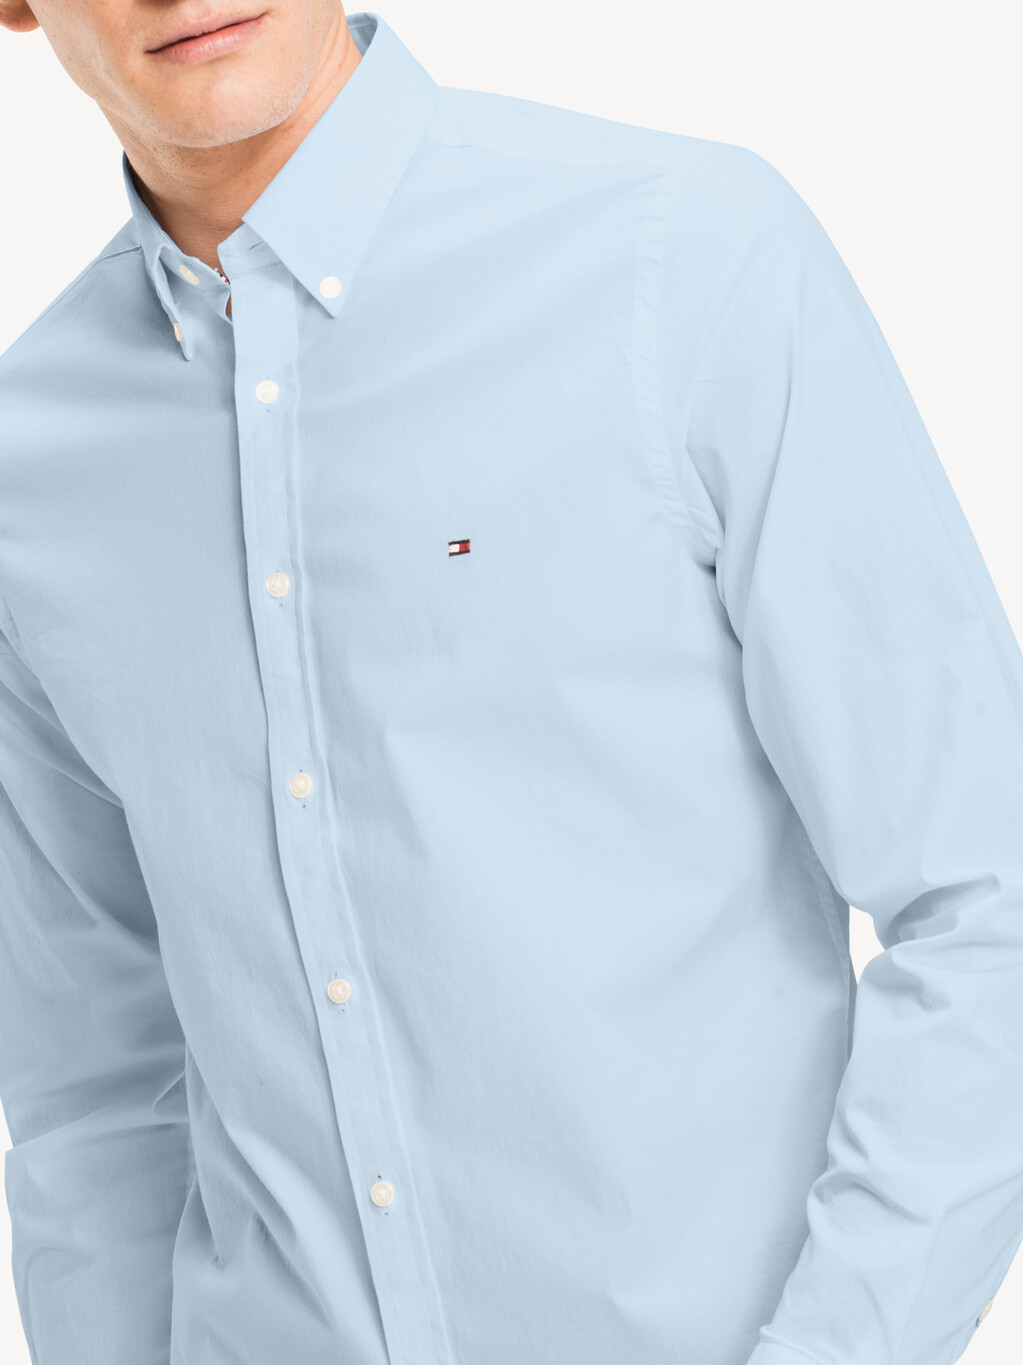 HERITAGE BUTTON DOWN SHIRT